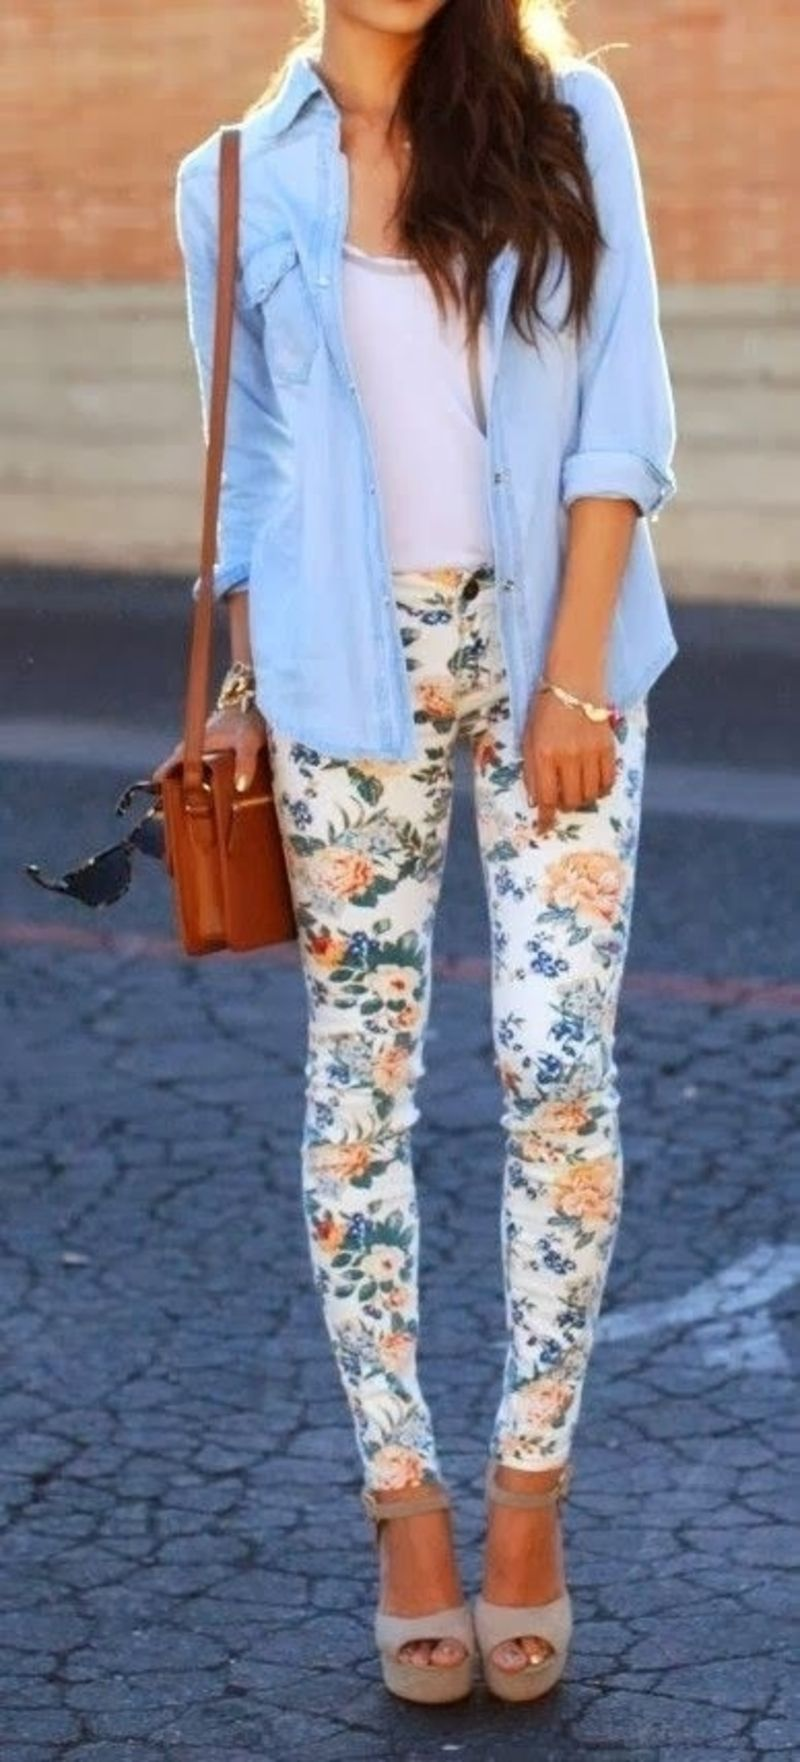 How to orange wear floral pants video